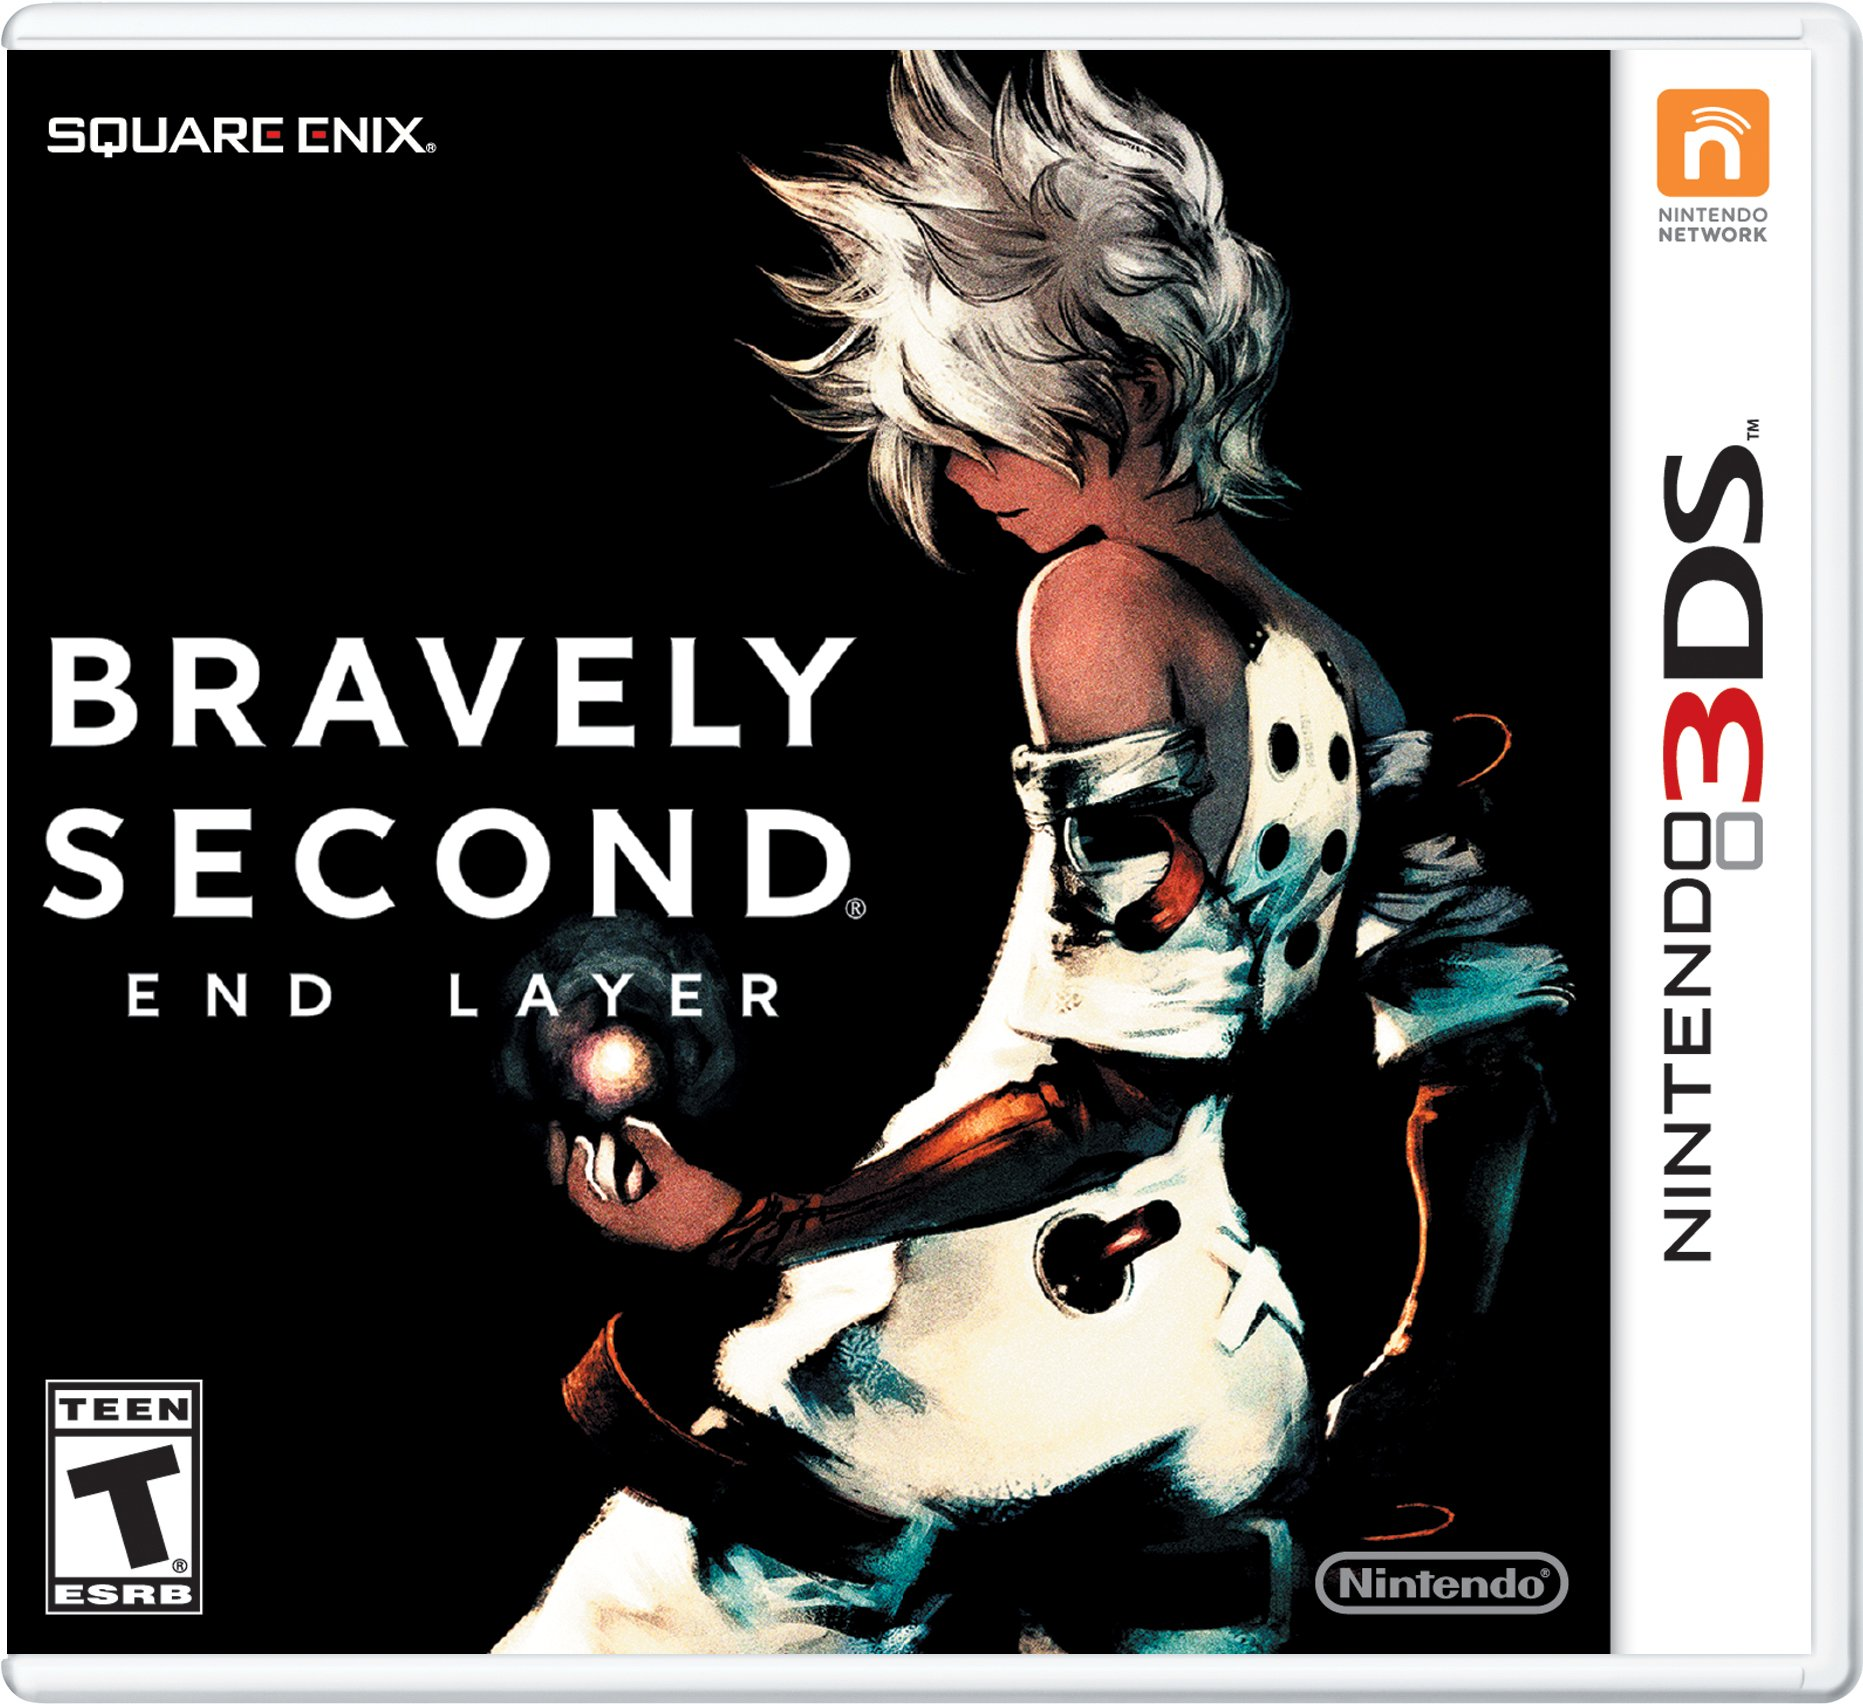 Square Enix Bravely Second: End Layer (Nintendo 3DS)